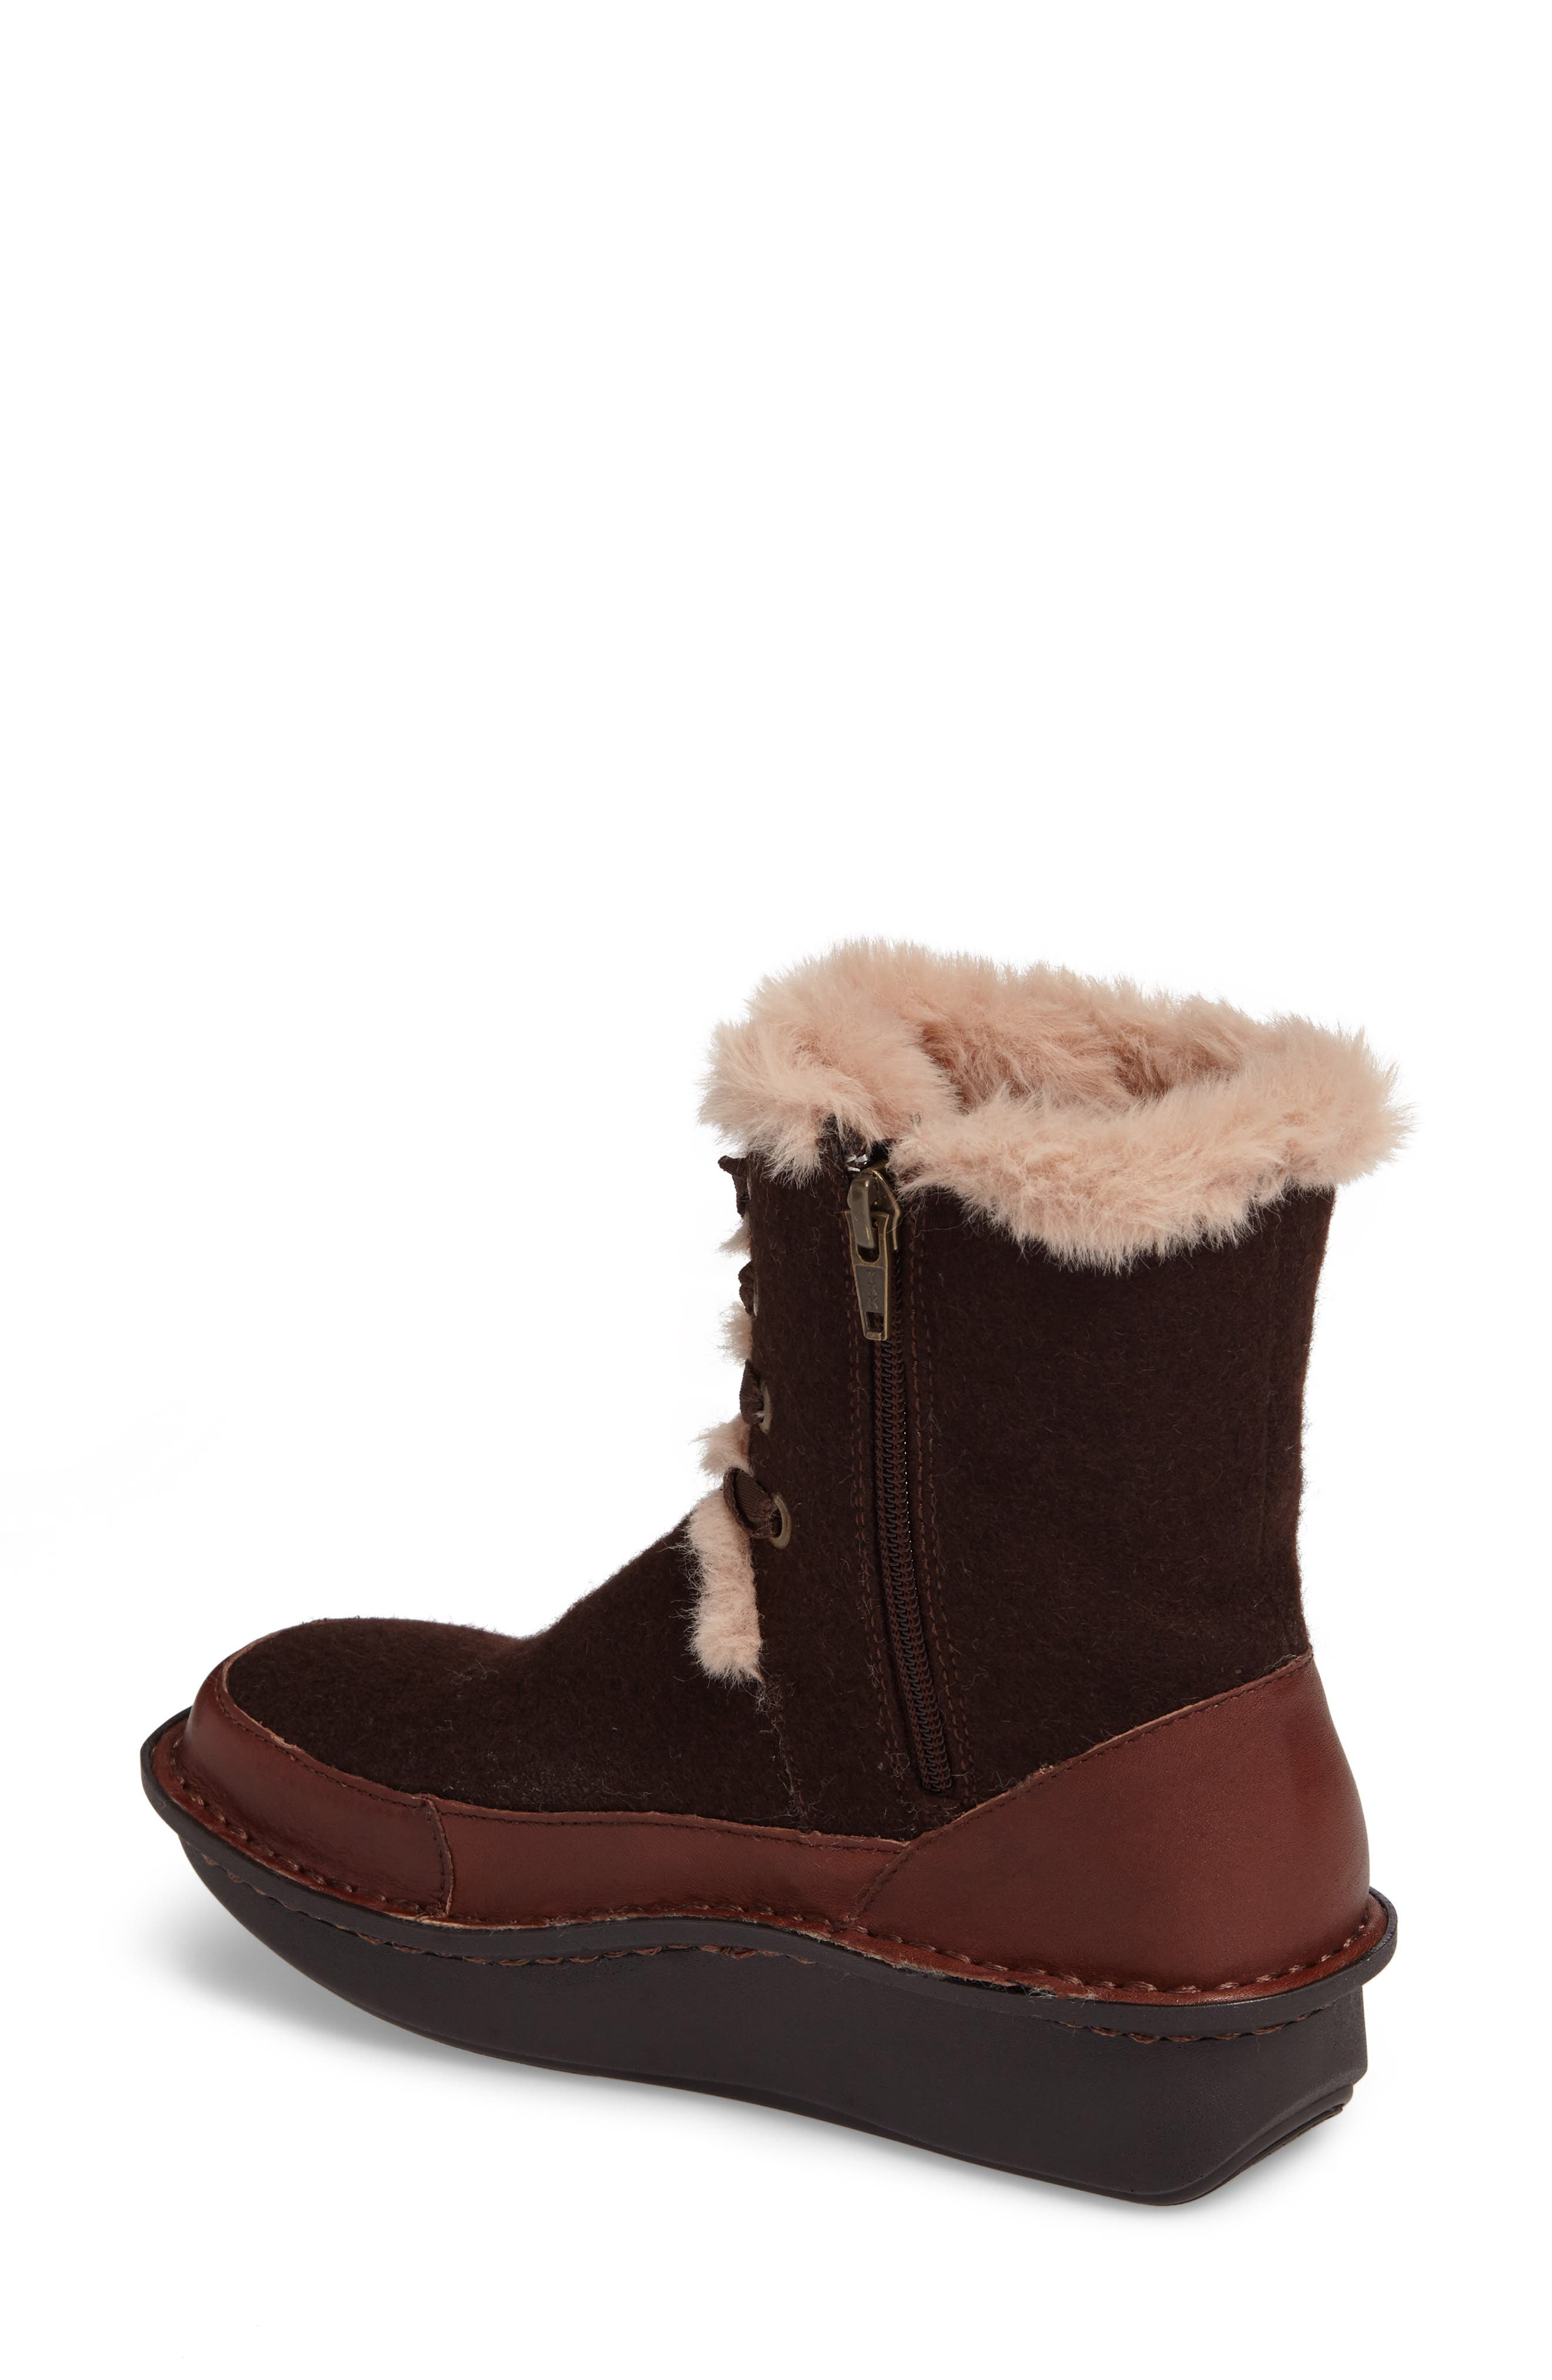 Twisp Lace-Up Boot with Faux Fur Lining,                             Alternate thumbnail 2, color,                             Hazelnut Wool Leather